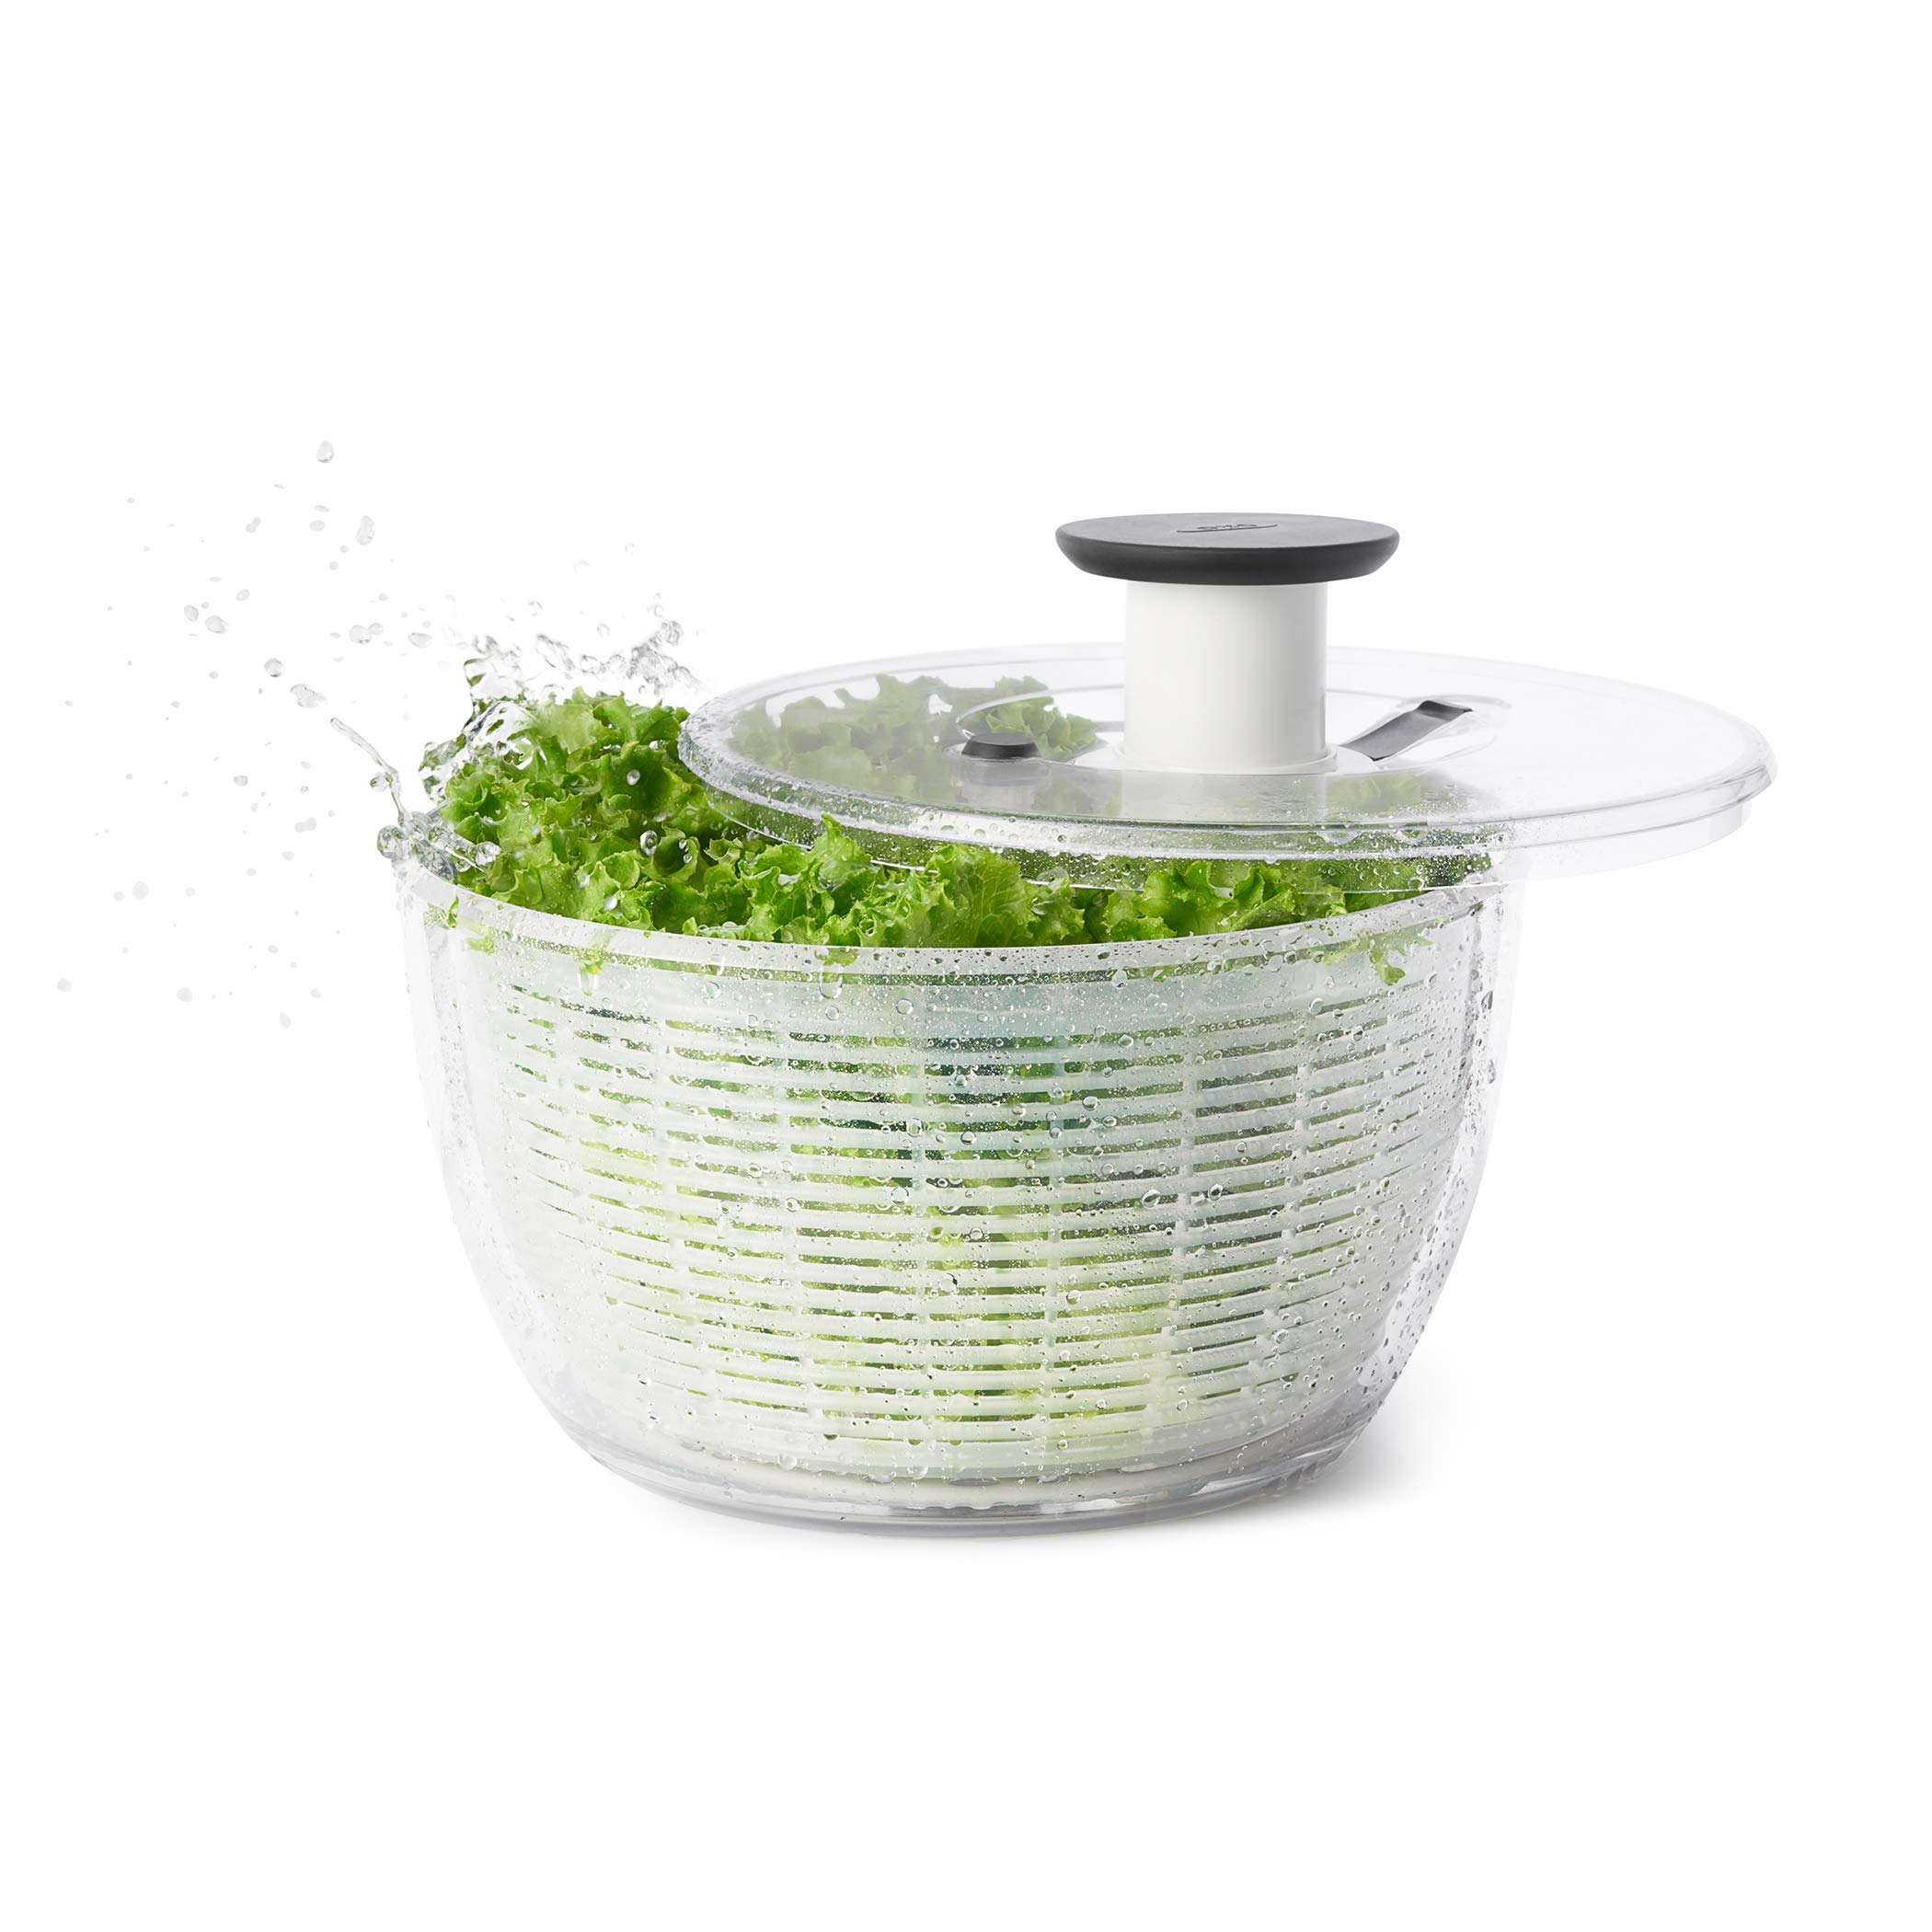 OXO Good Grips Salad Spinner, Large, Clear (Renewed) by OXO